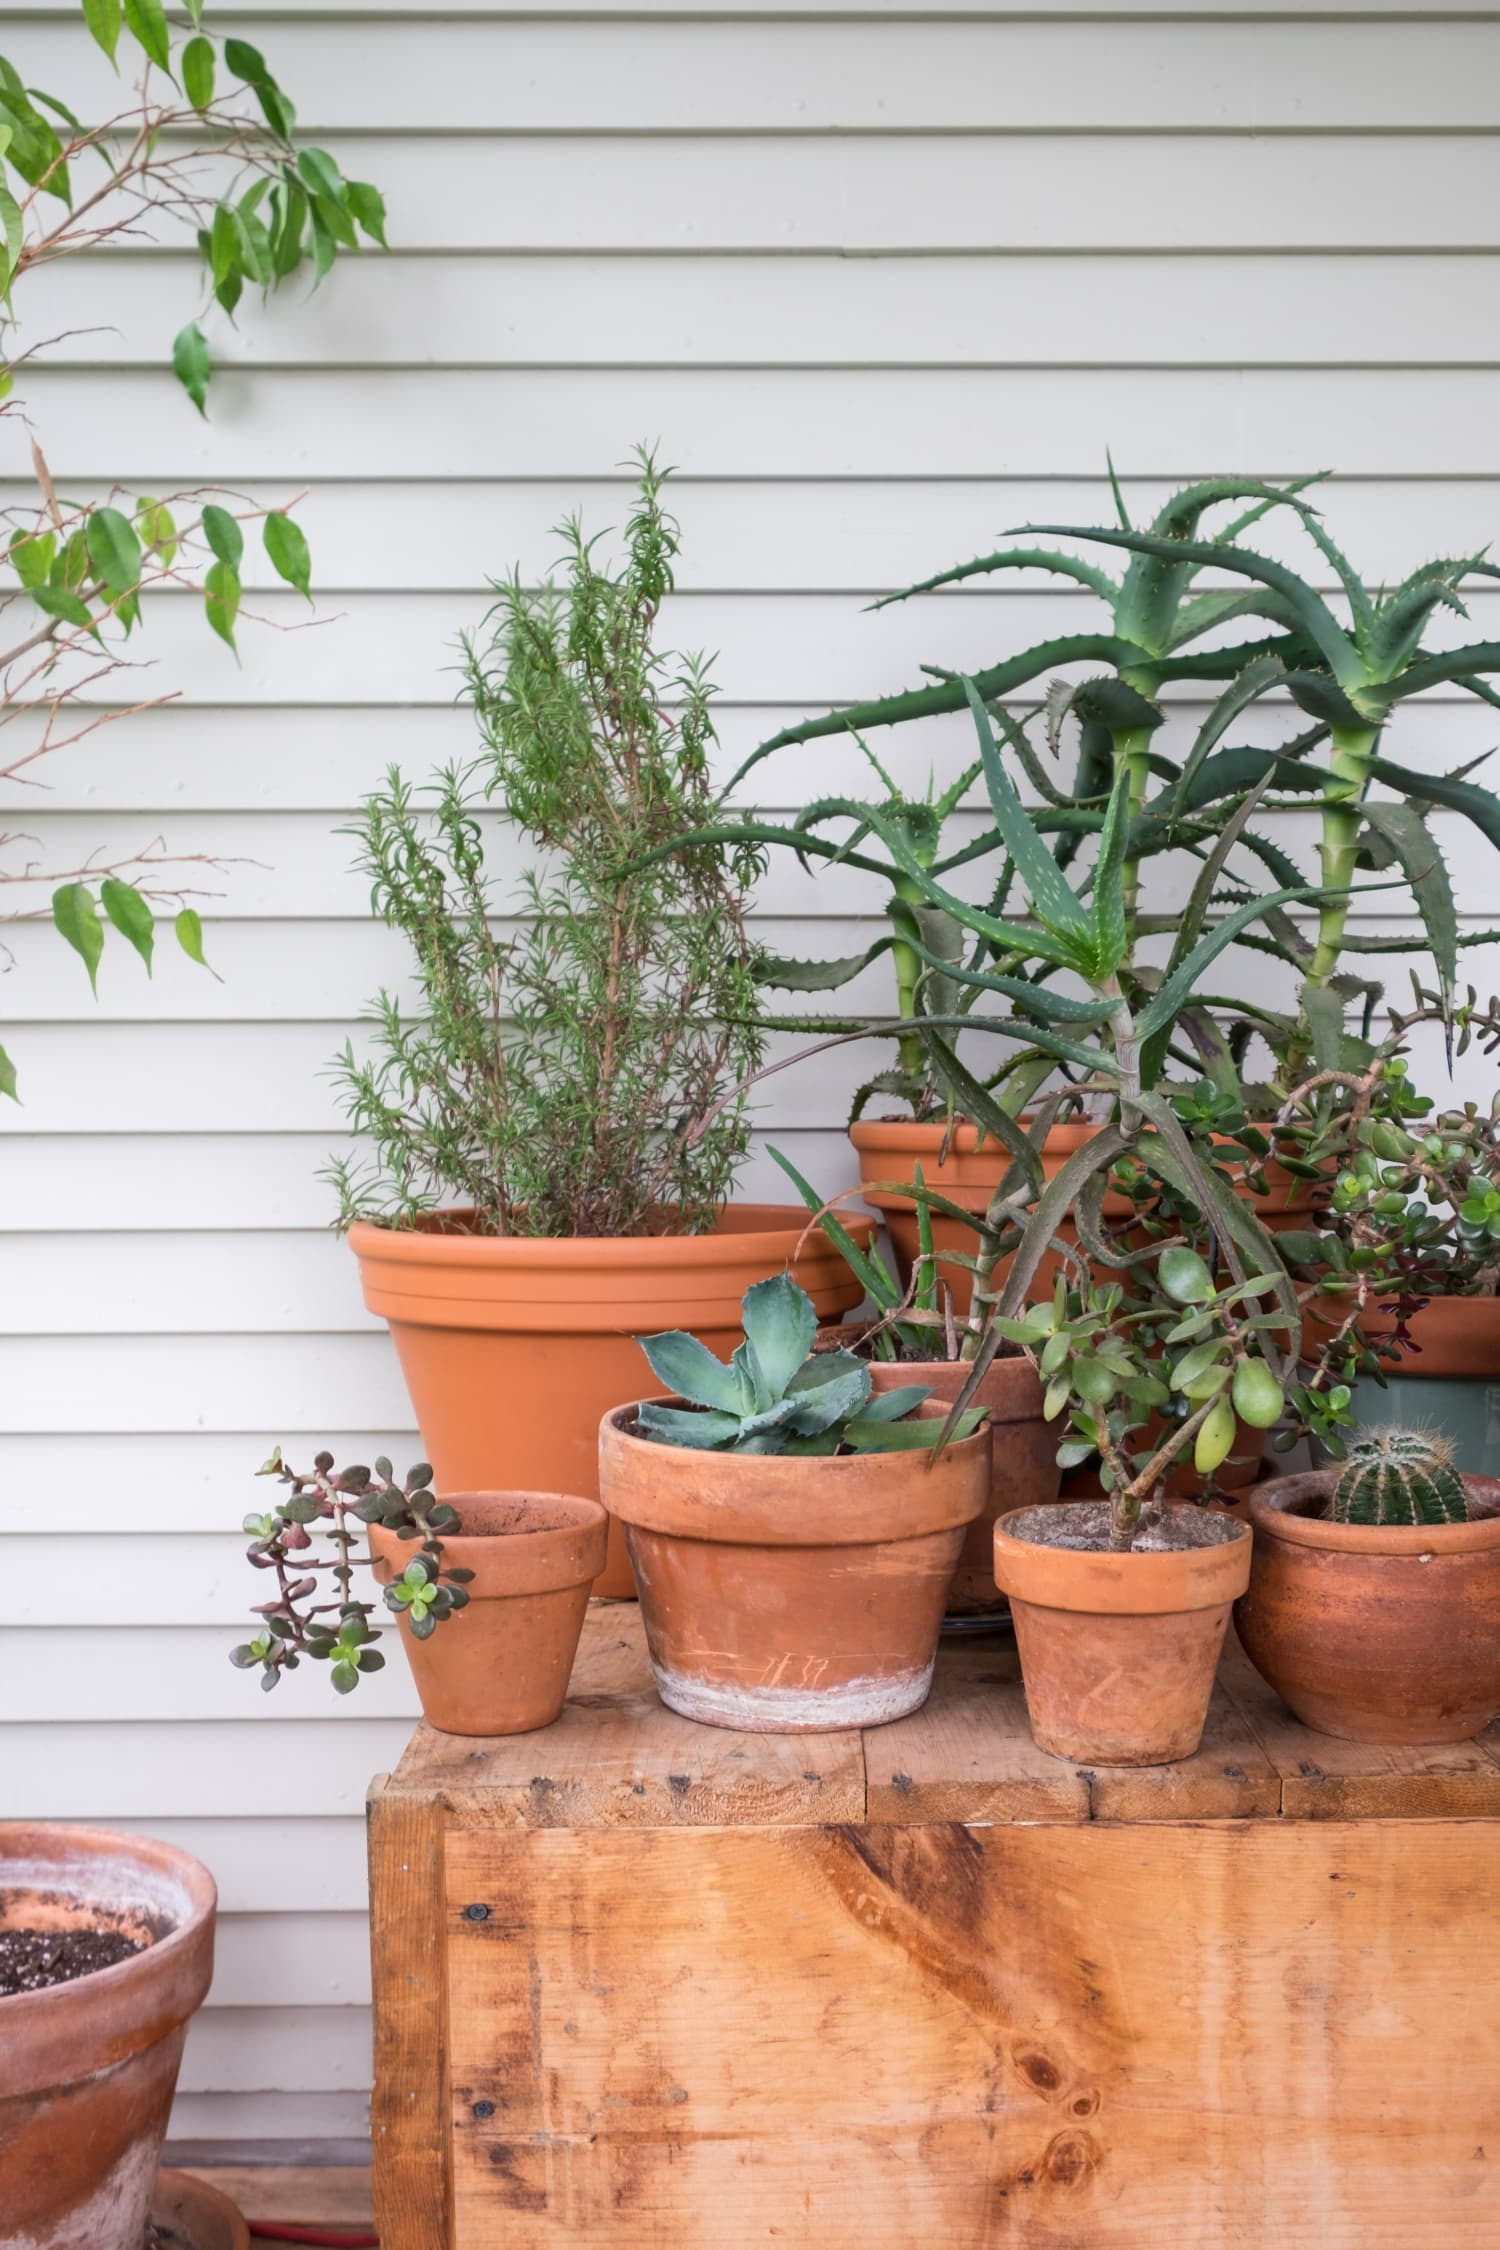 6 Essential Tips for Container Gardening